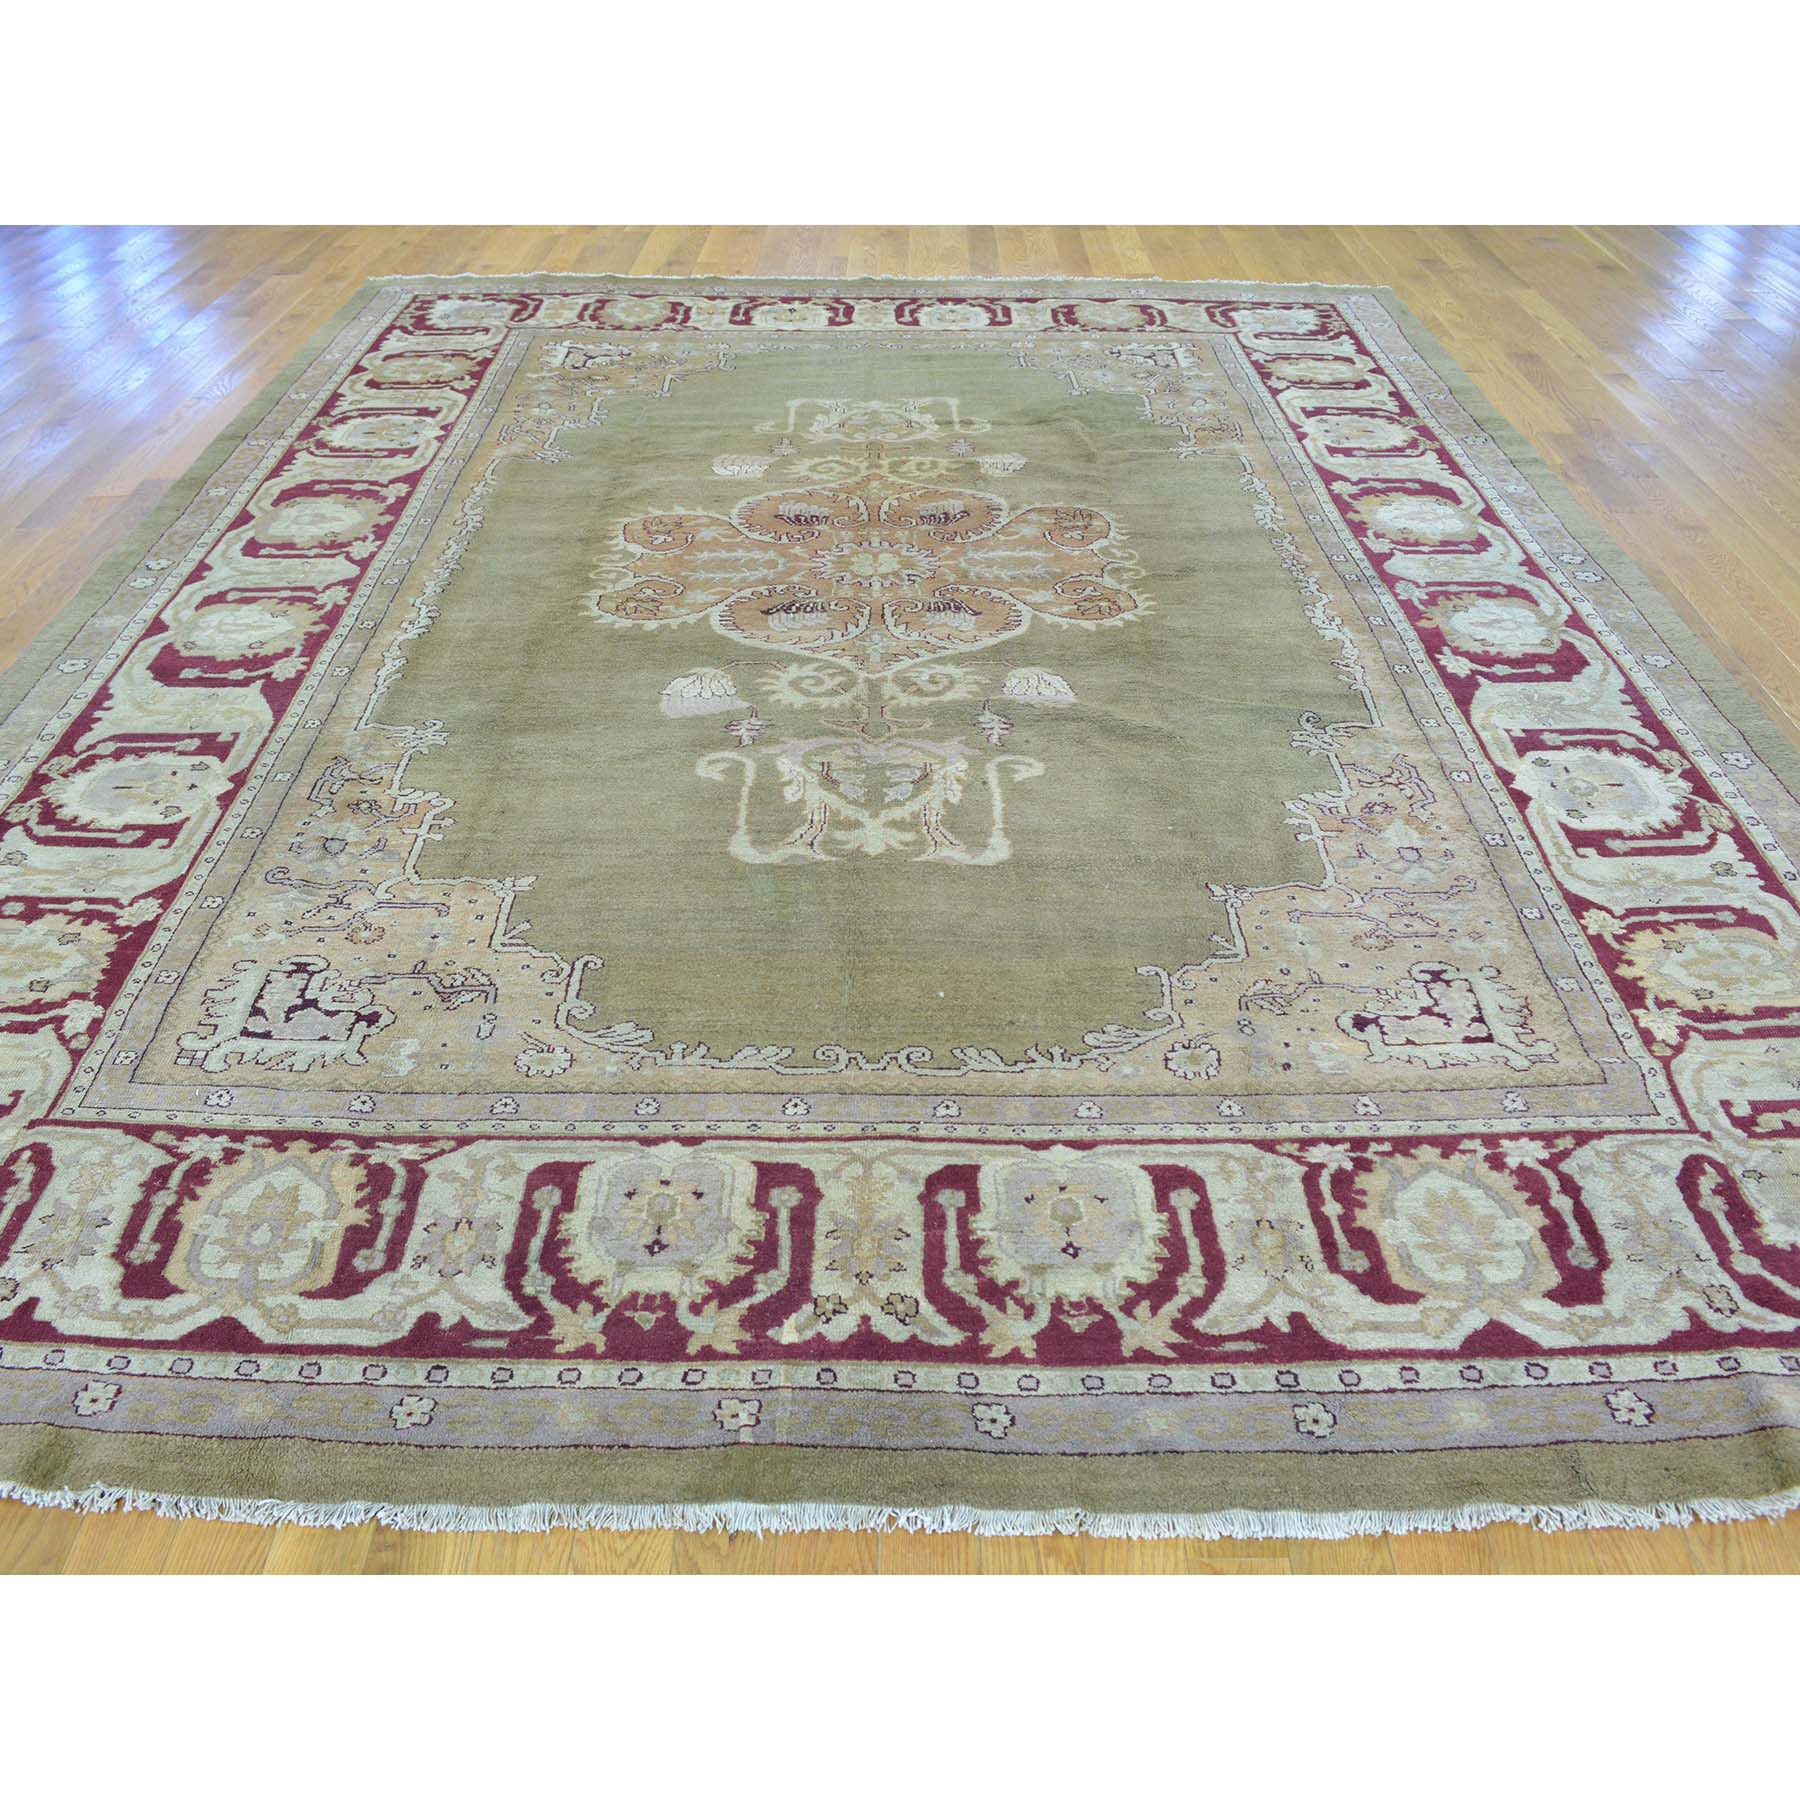 "Handmade Antique Rectangle Rug > Design# SH26880 > Size: 9'-0"" x 11'-7"" [ONLINE ONLY]"